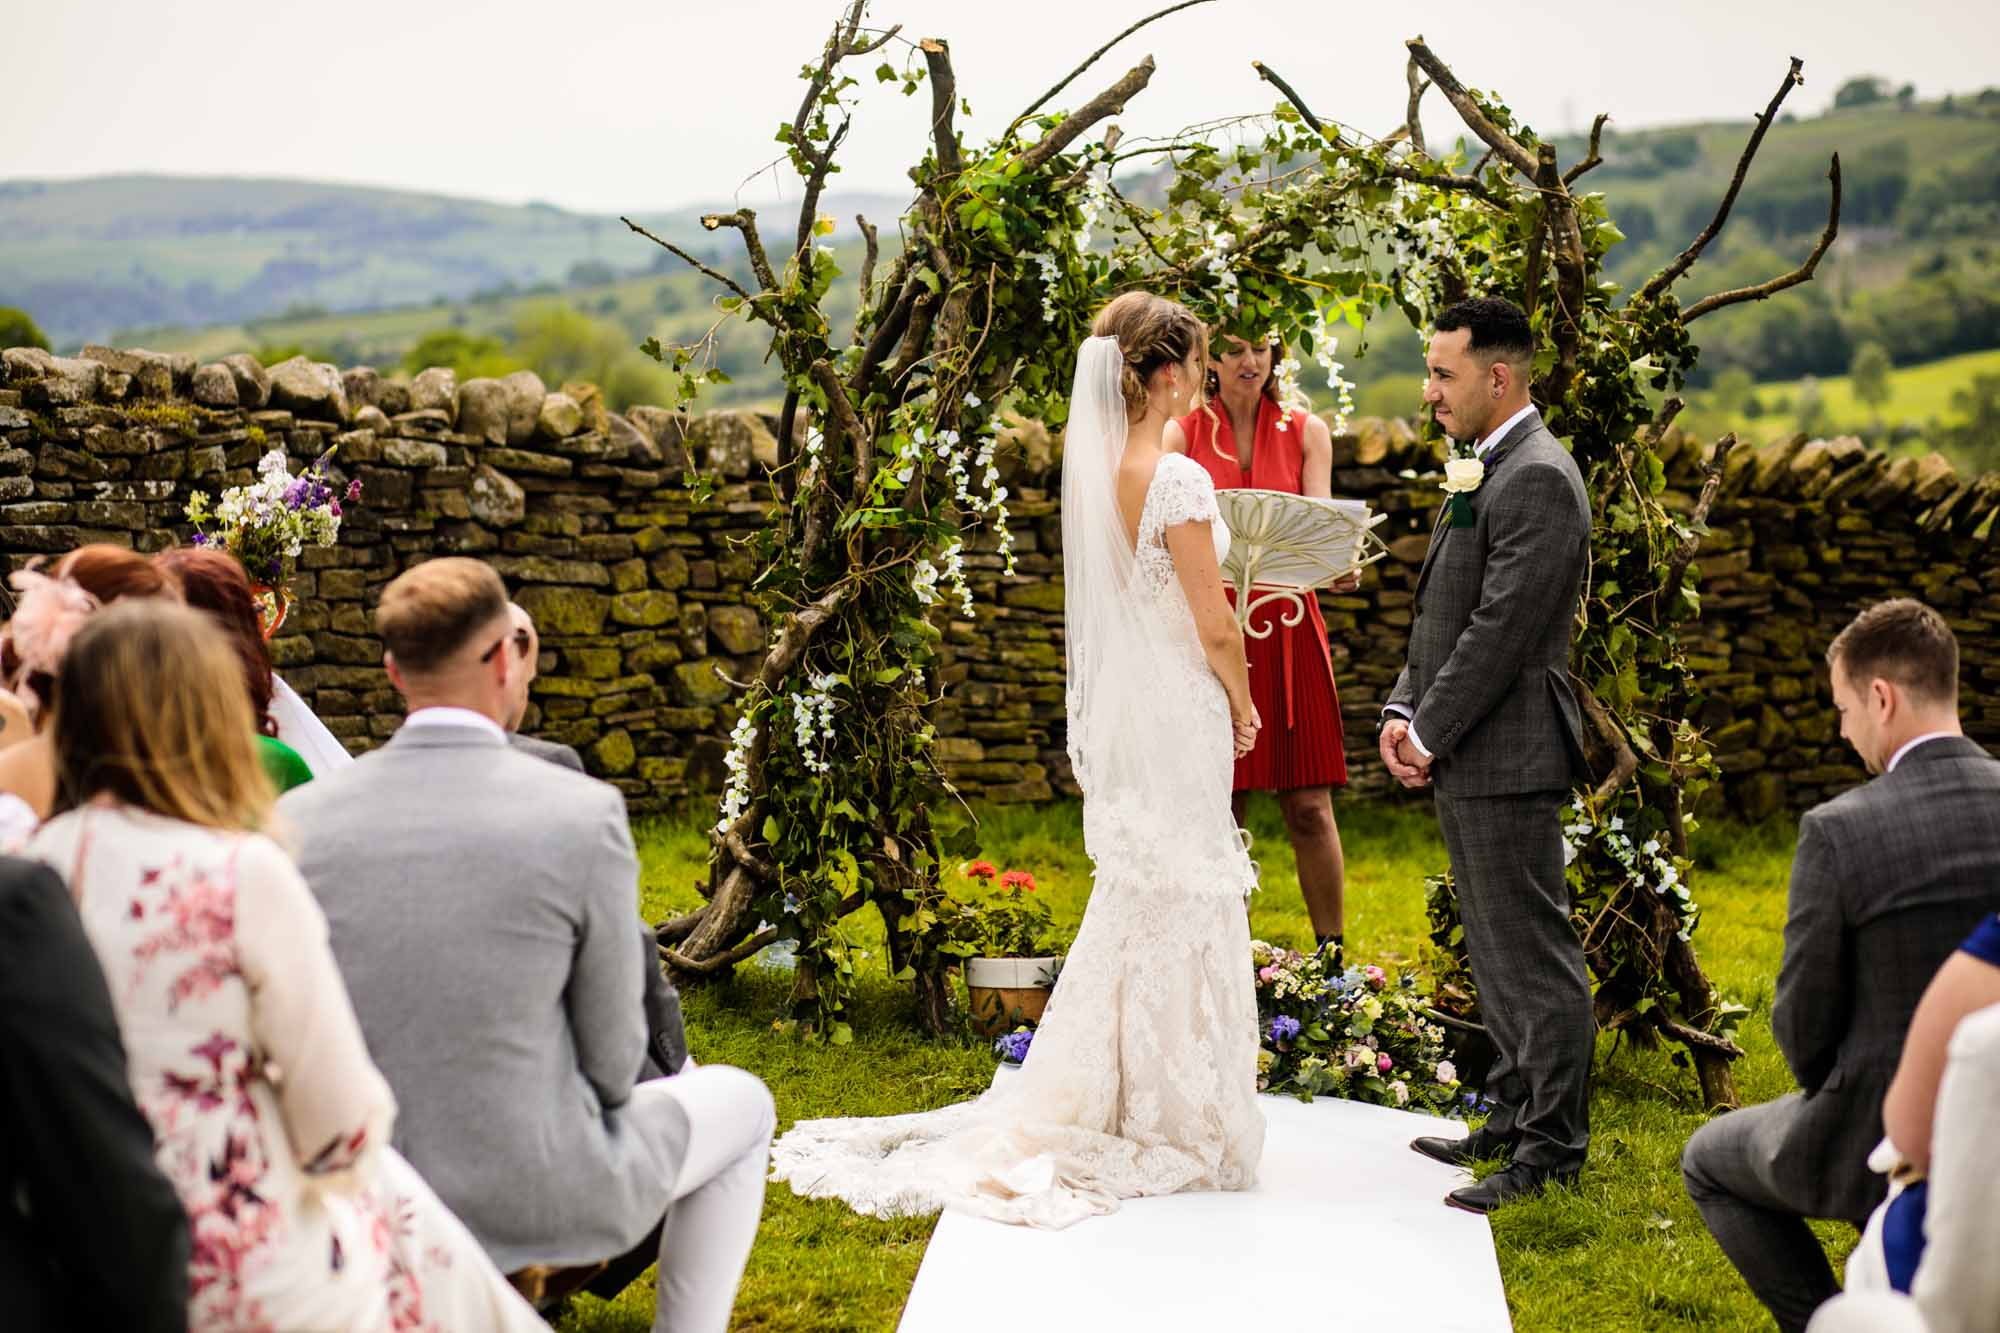 Thornsett Fields Farm Wedding Ceremony Photographs